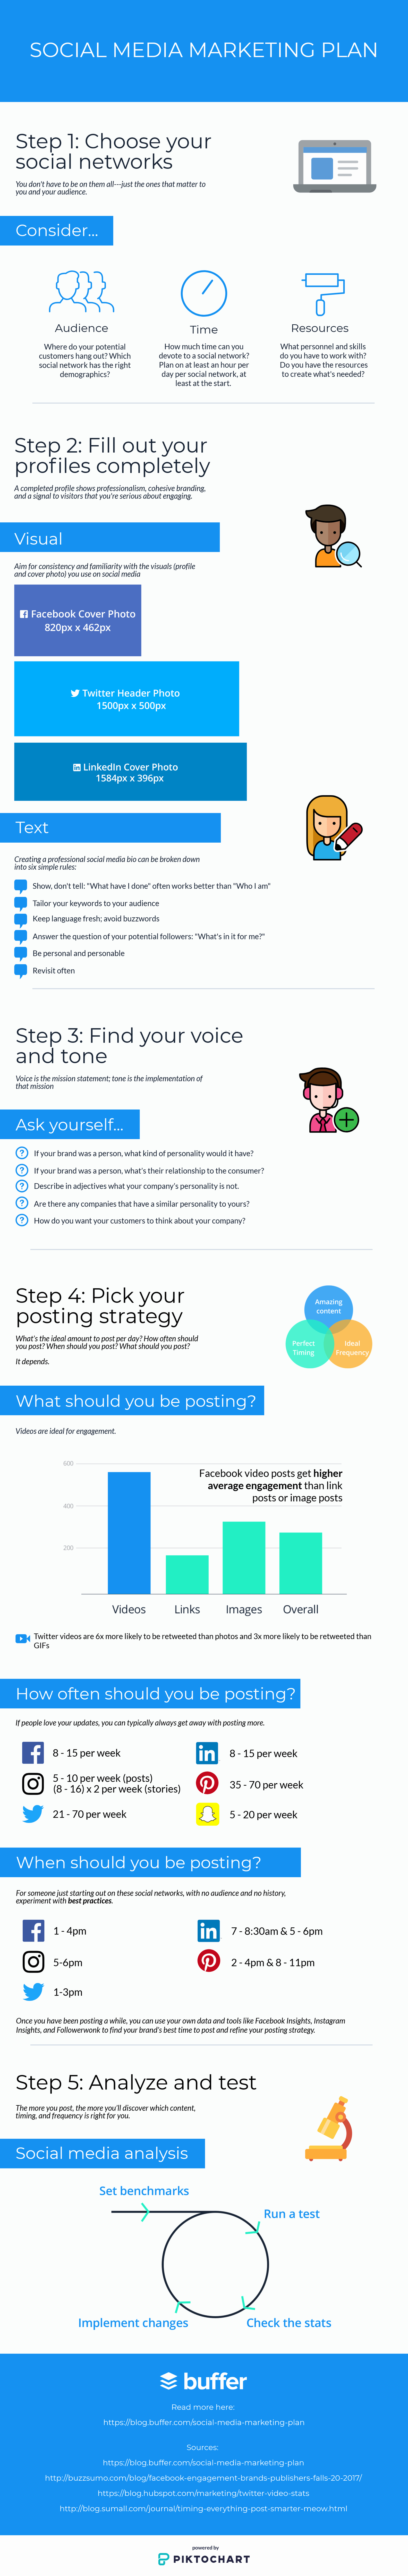 Social Media Management Contract Awesome How to Create A social Media Marketing Plan From Scratch